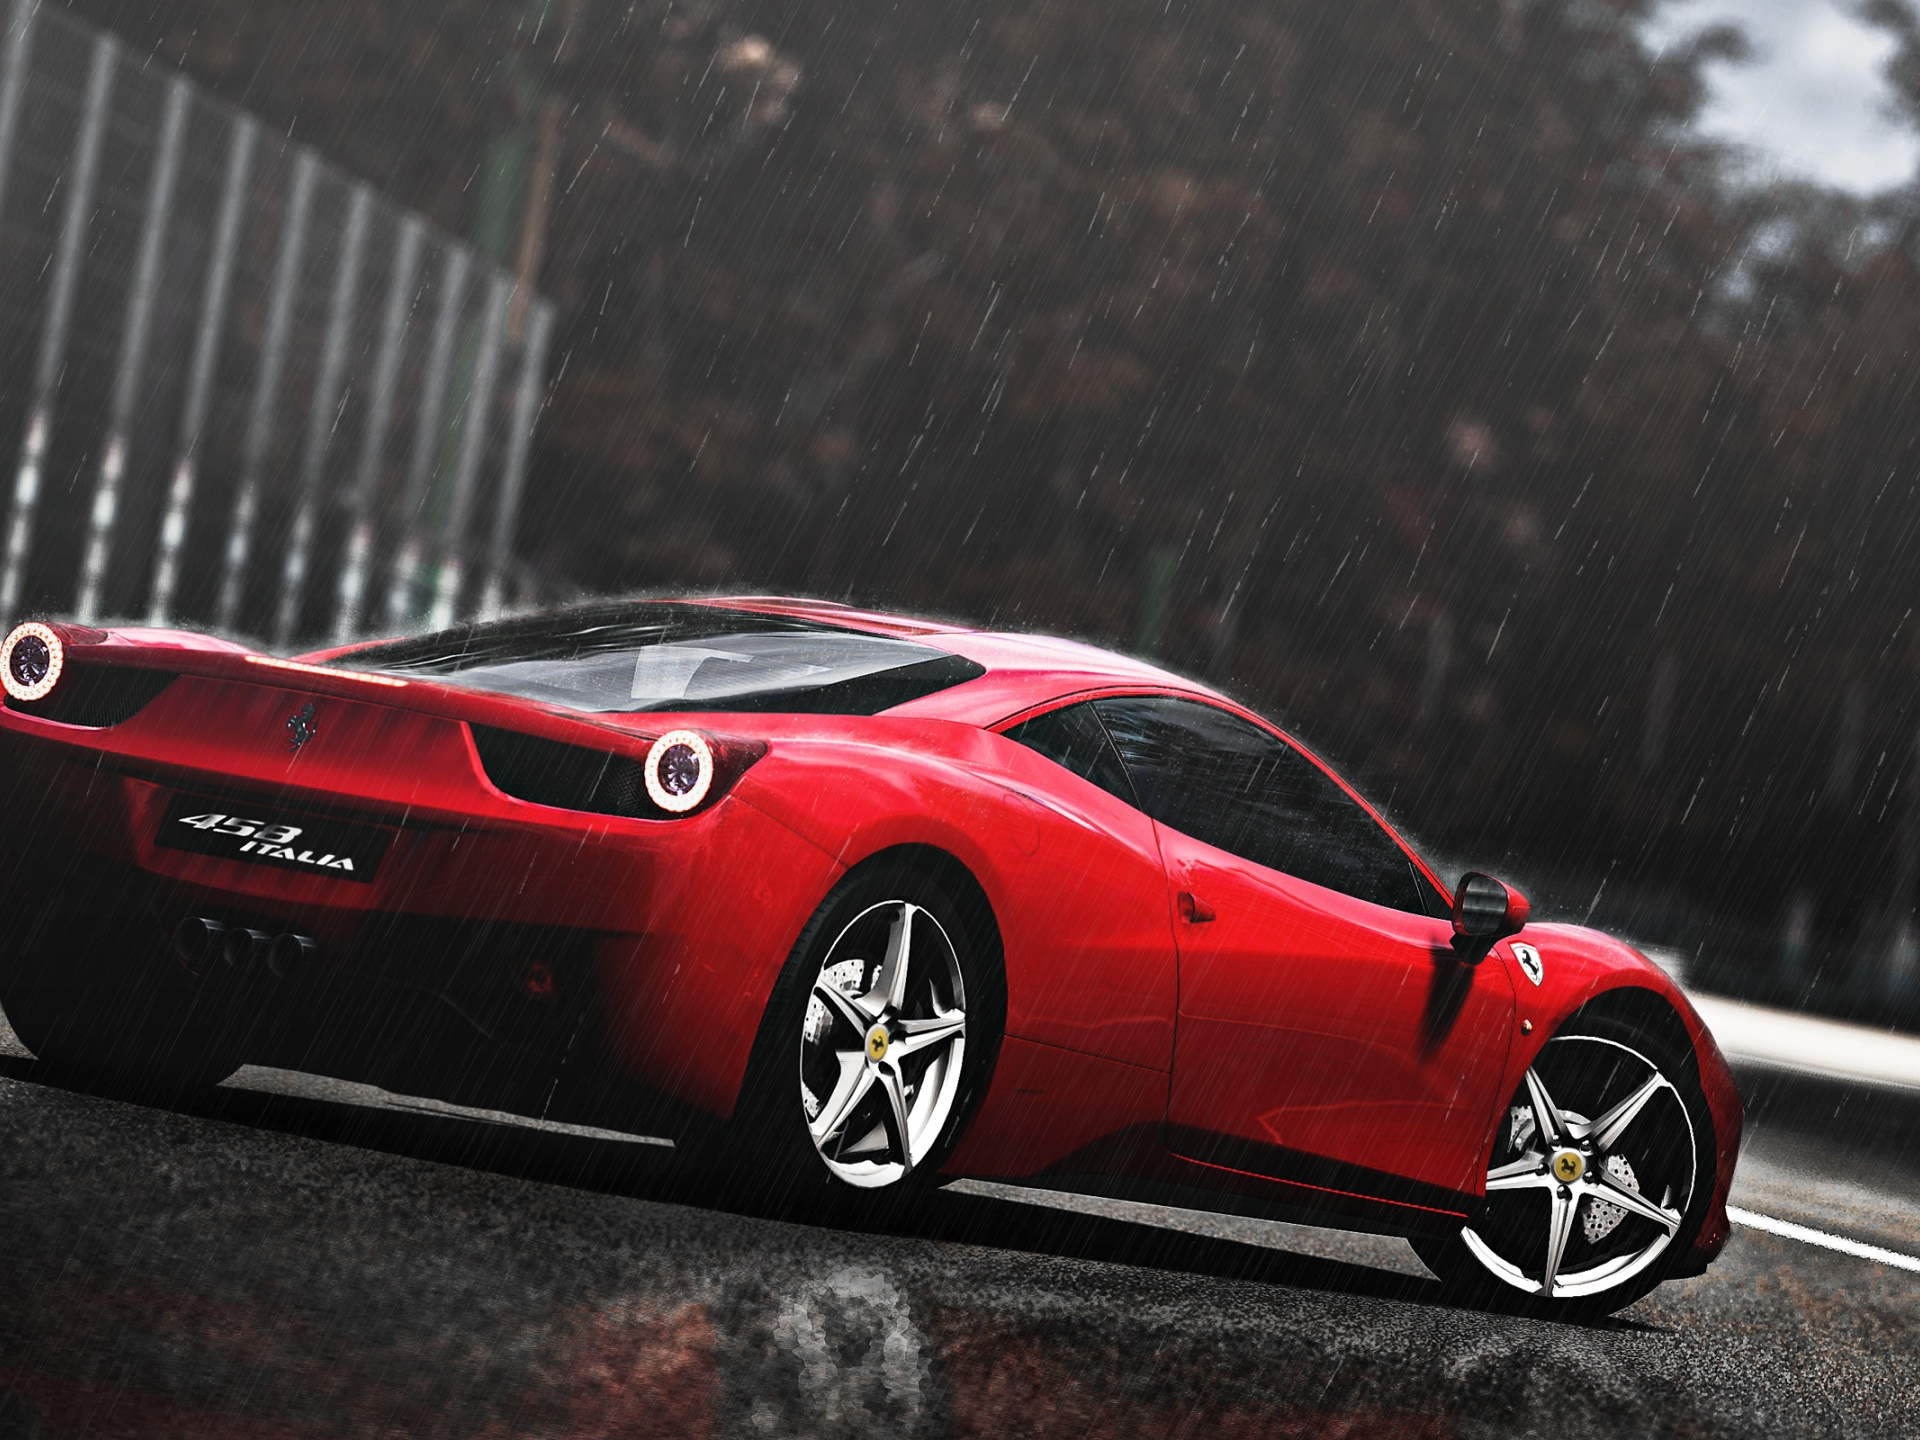 click to free download the wallpaper--Top Cars Image, Ferrari 458 in the Rain, Nothing Shall Affect Its Decency and Look 1920X1440 free wallpaper download